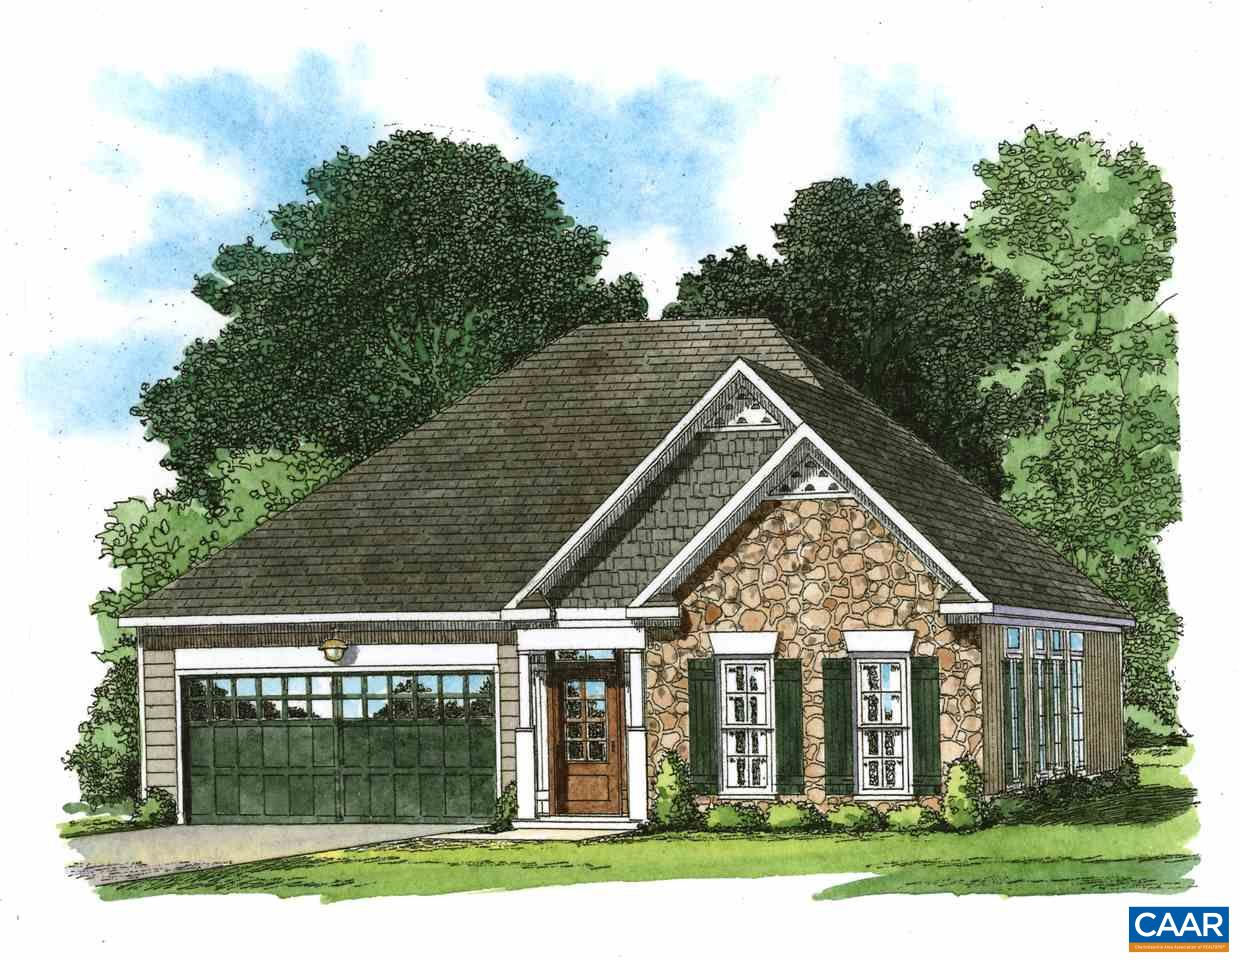 home for sale , MLS #560614, 06 Whirlaway Dr